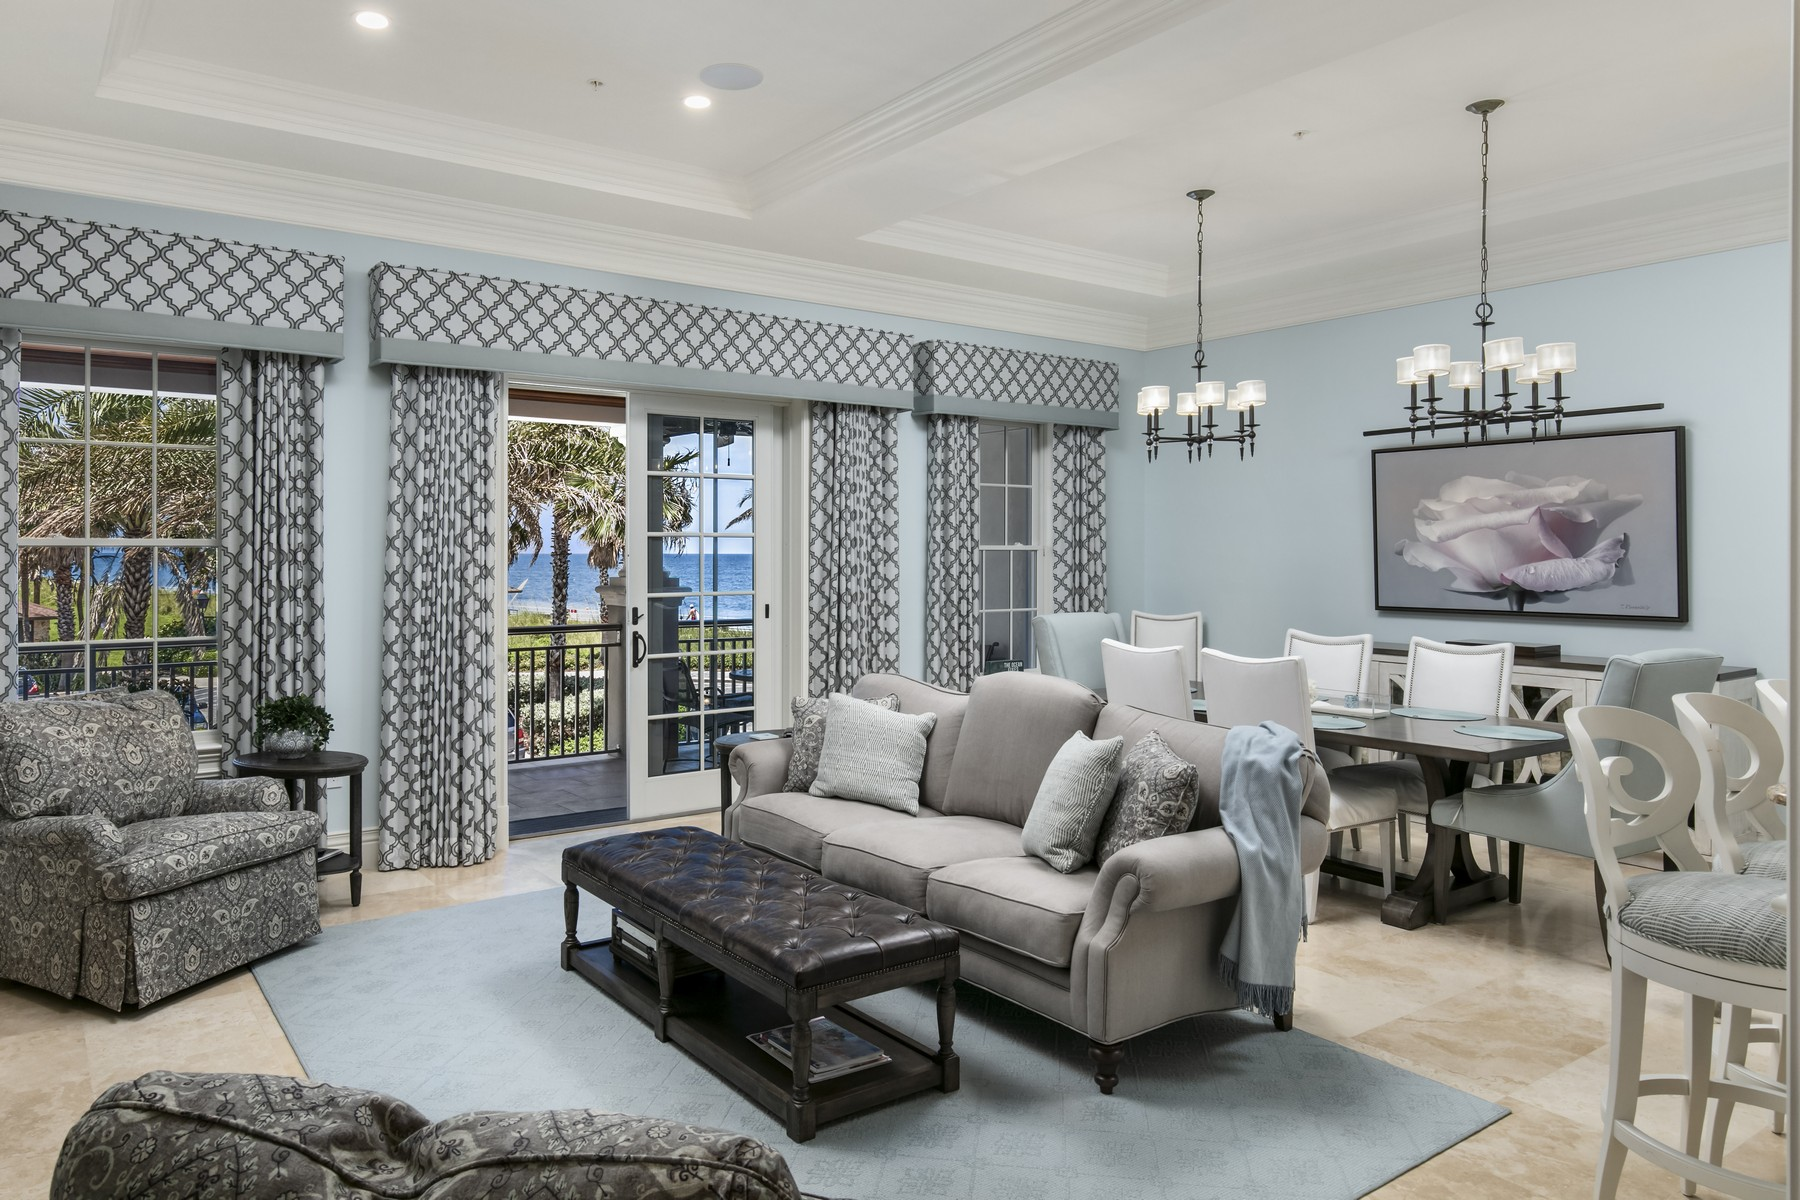 Additional photo for property listing at Exquisite Seaside Living In Ocean Park In Prime Ocean Drive Location 1010 Easter Lily Lane #203 Vero Beach, Florida 32963 United States